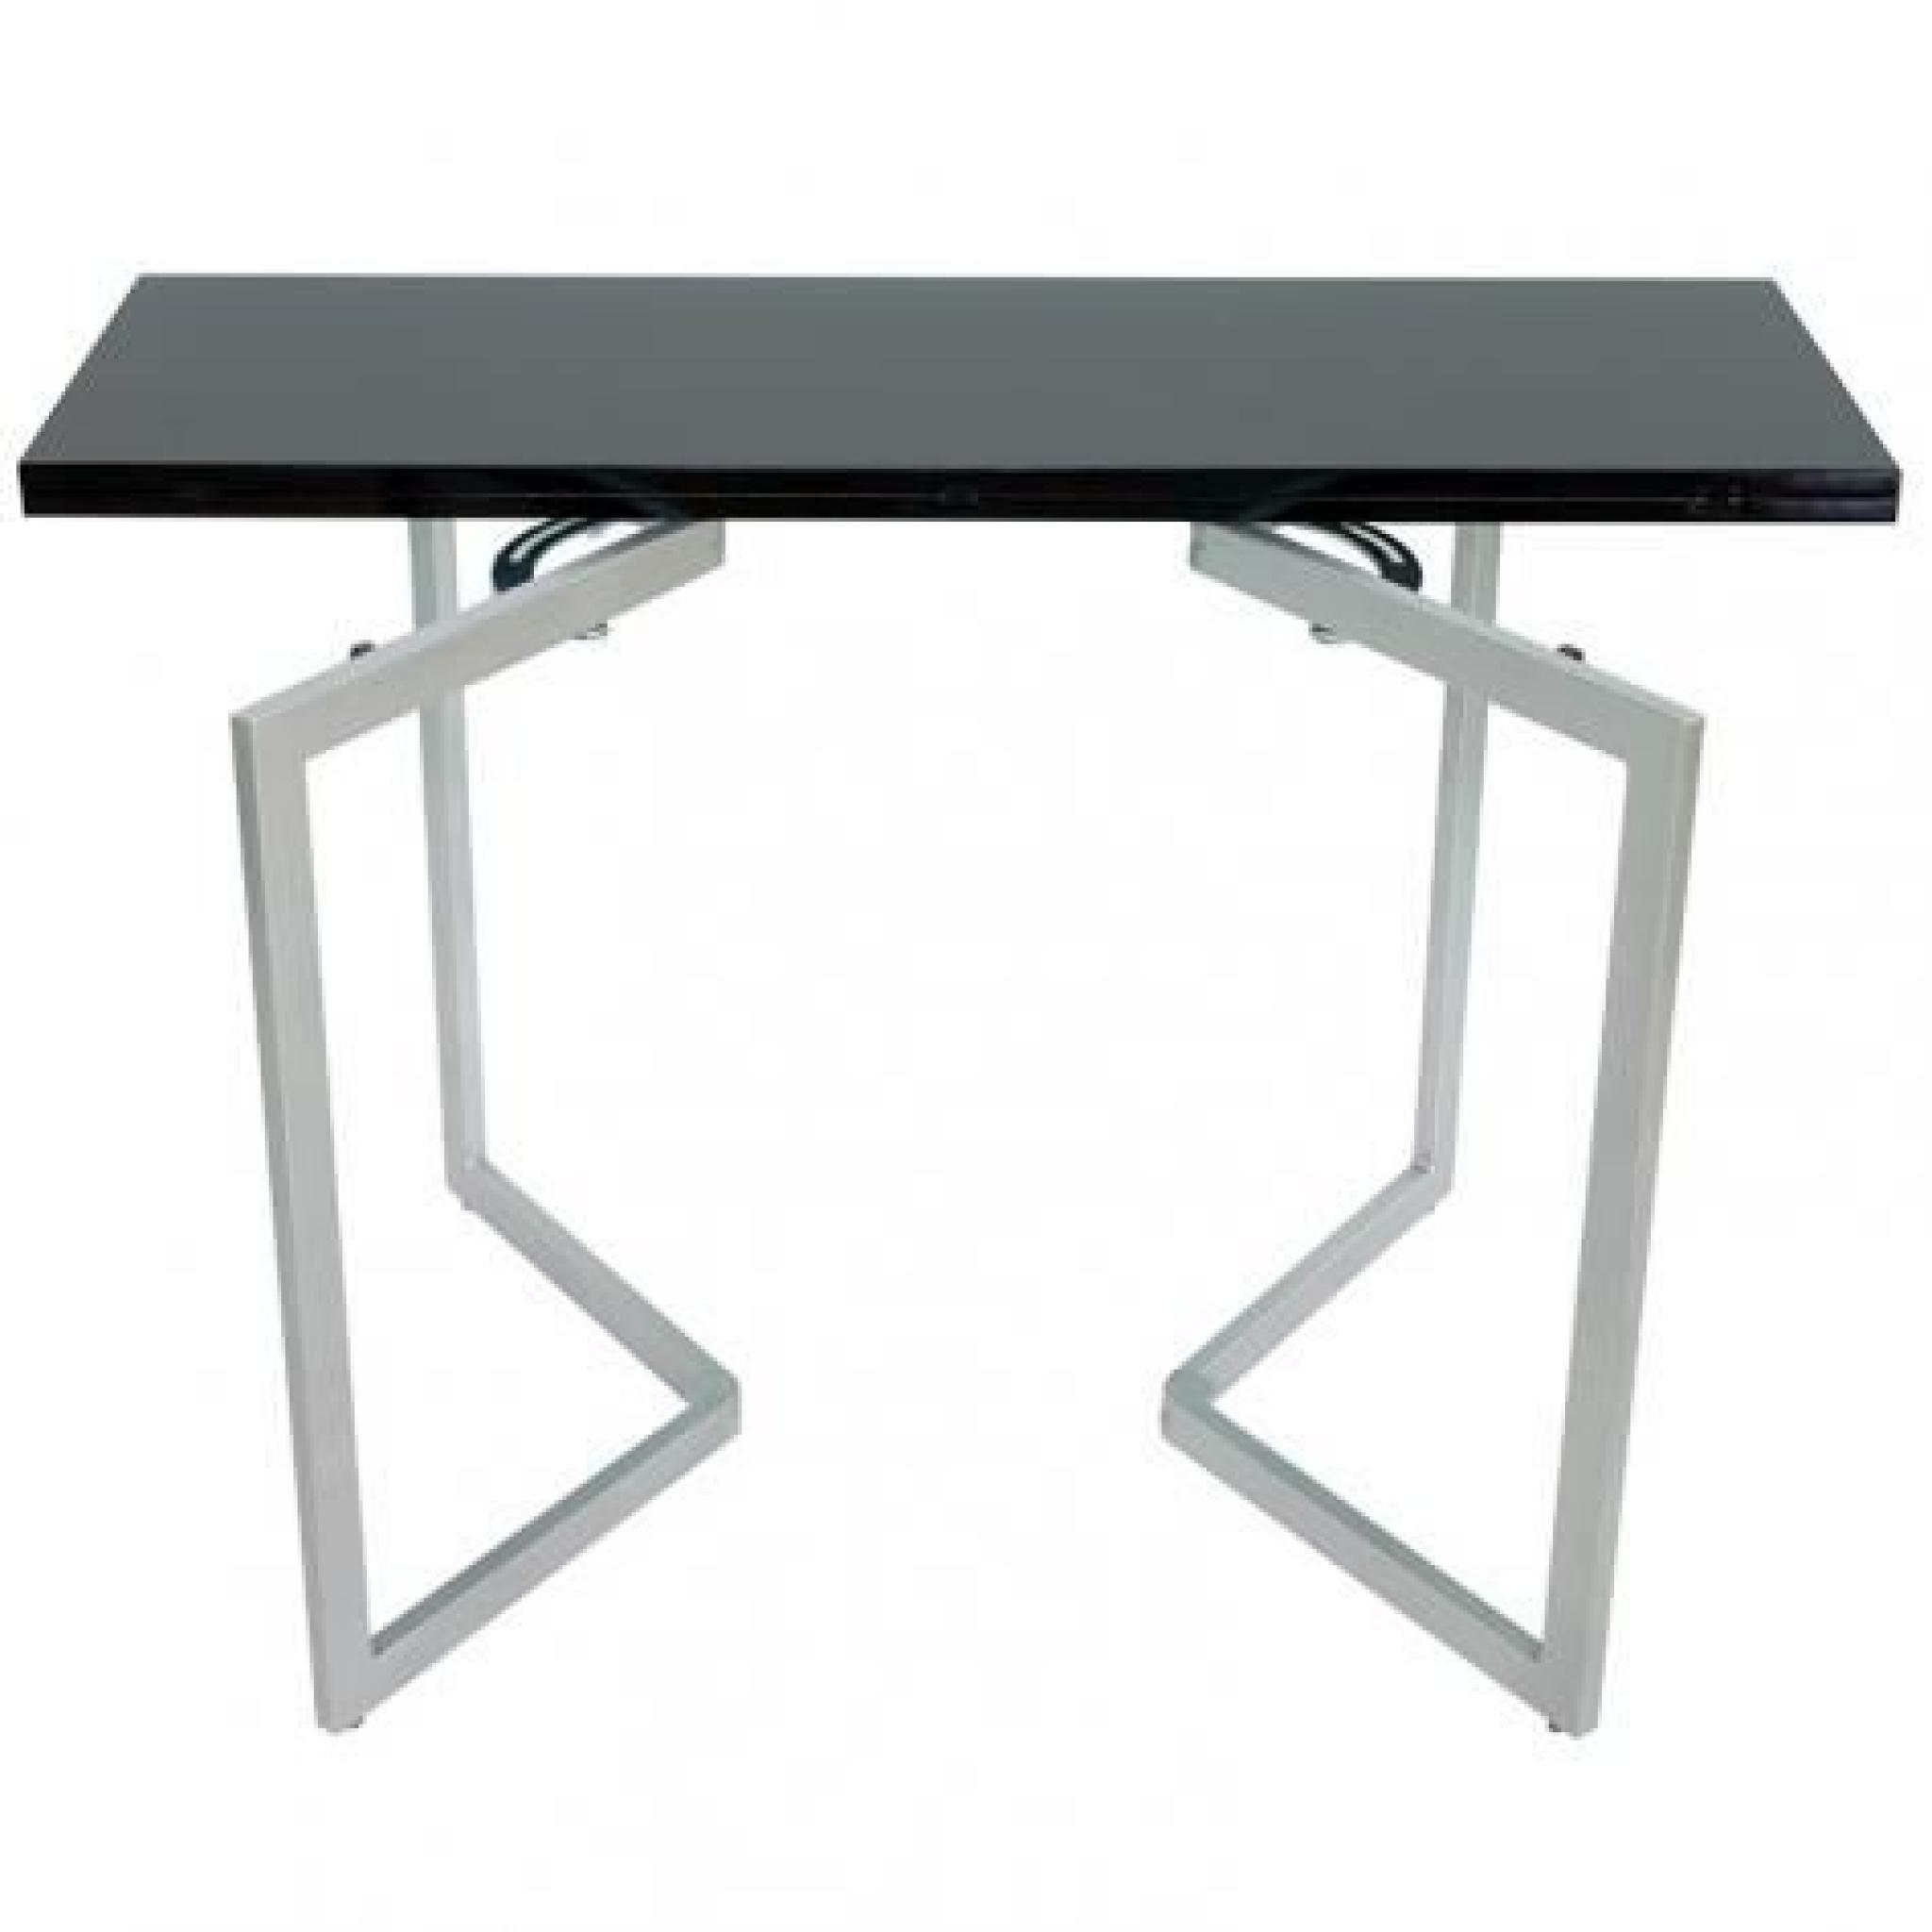 table console extensible pas cher nouveaux mod les de maison. Black Bedroom Furniture Sets. Home Design Ideas